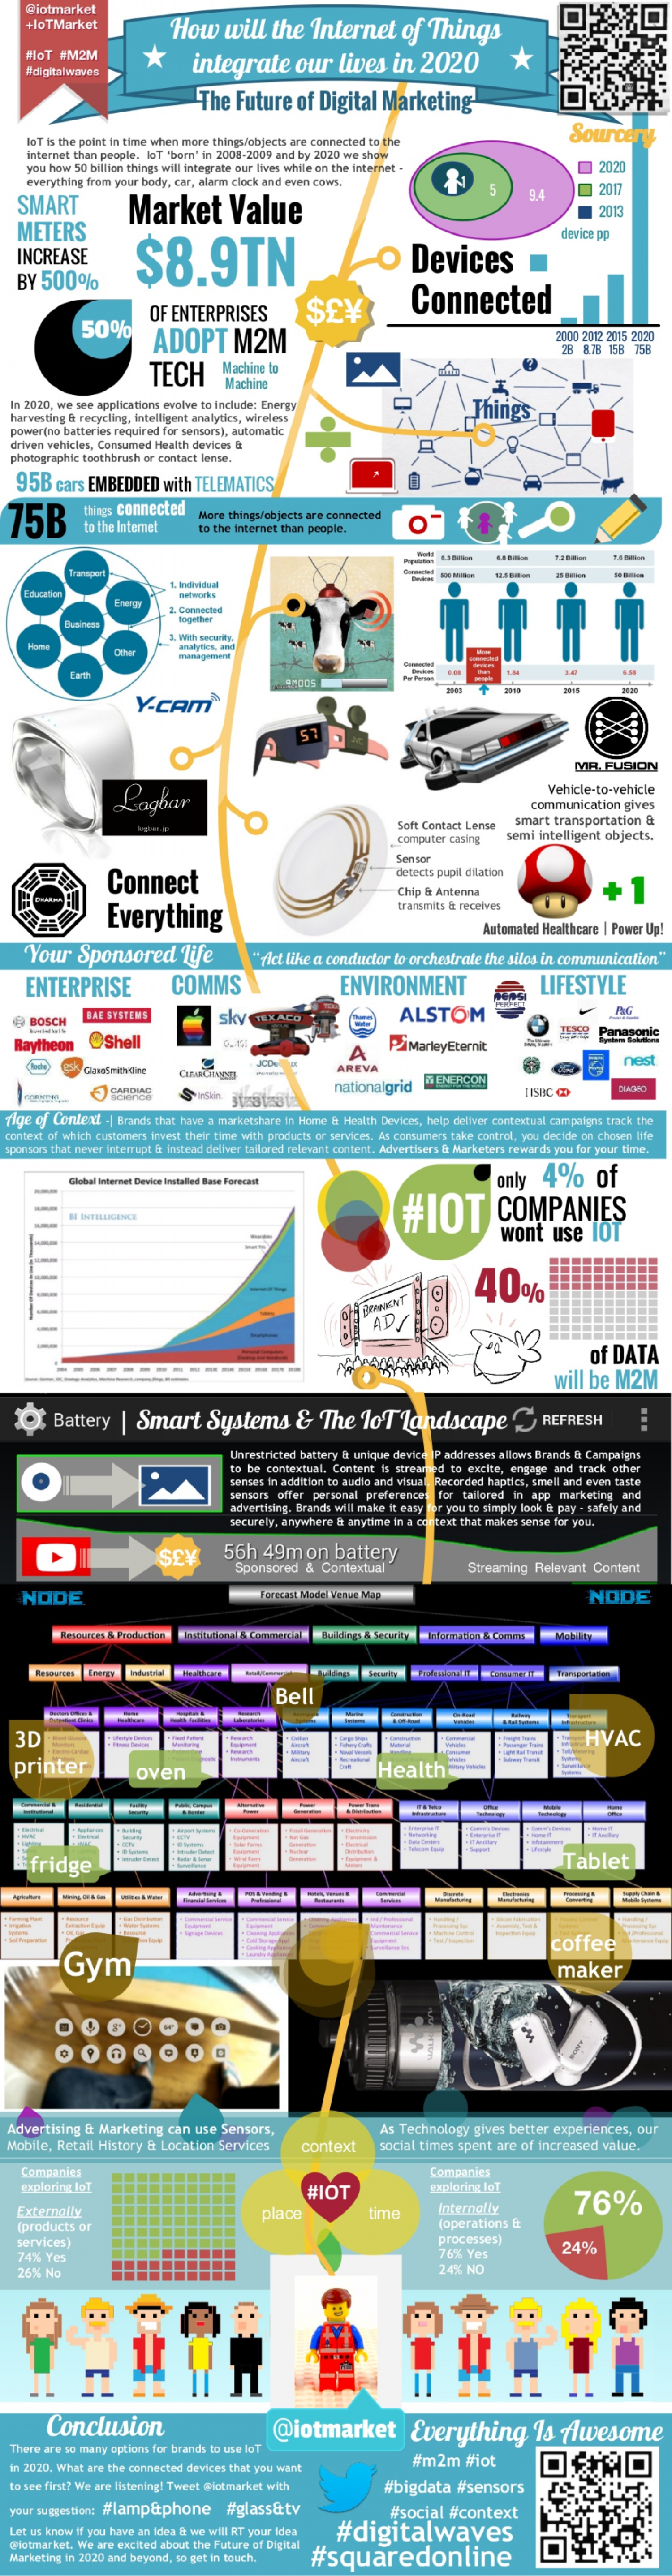 How will The Internet of Things Integrate our Lives in 2020 @iotmarket Infographic